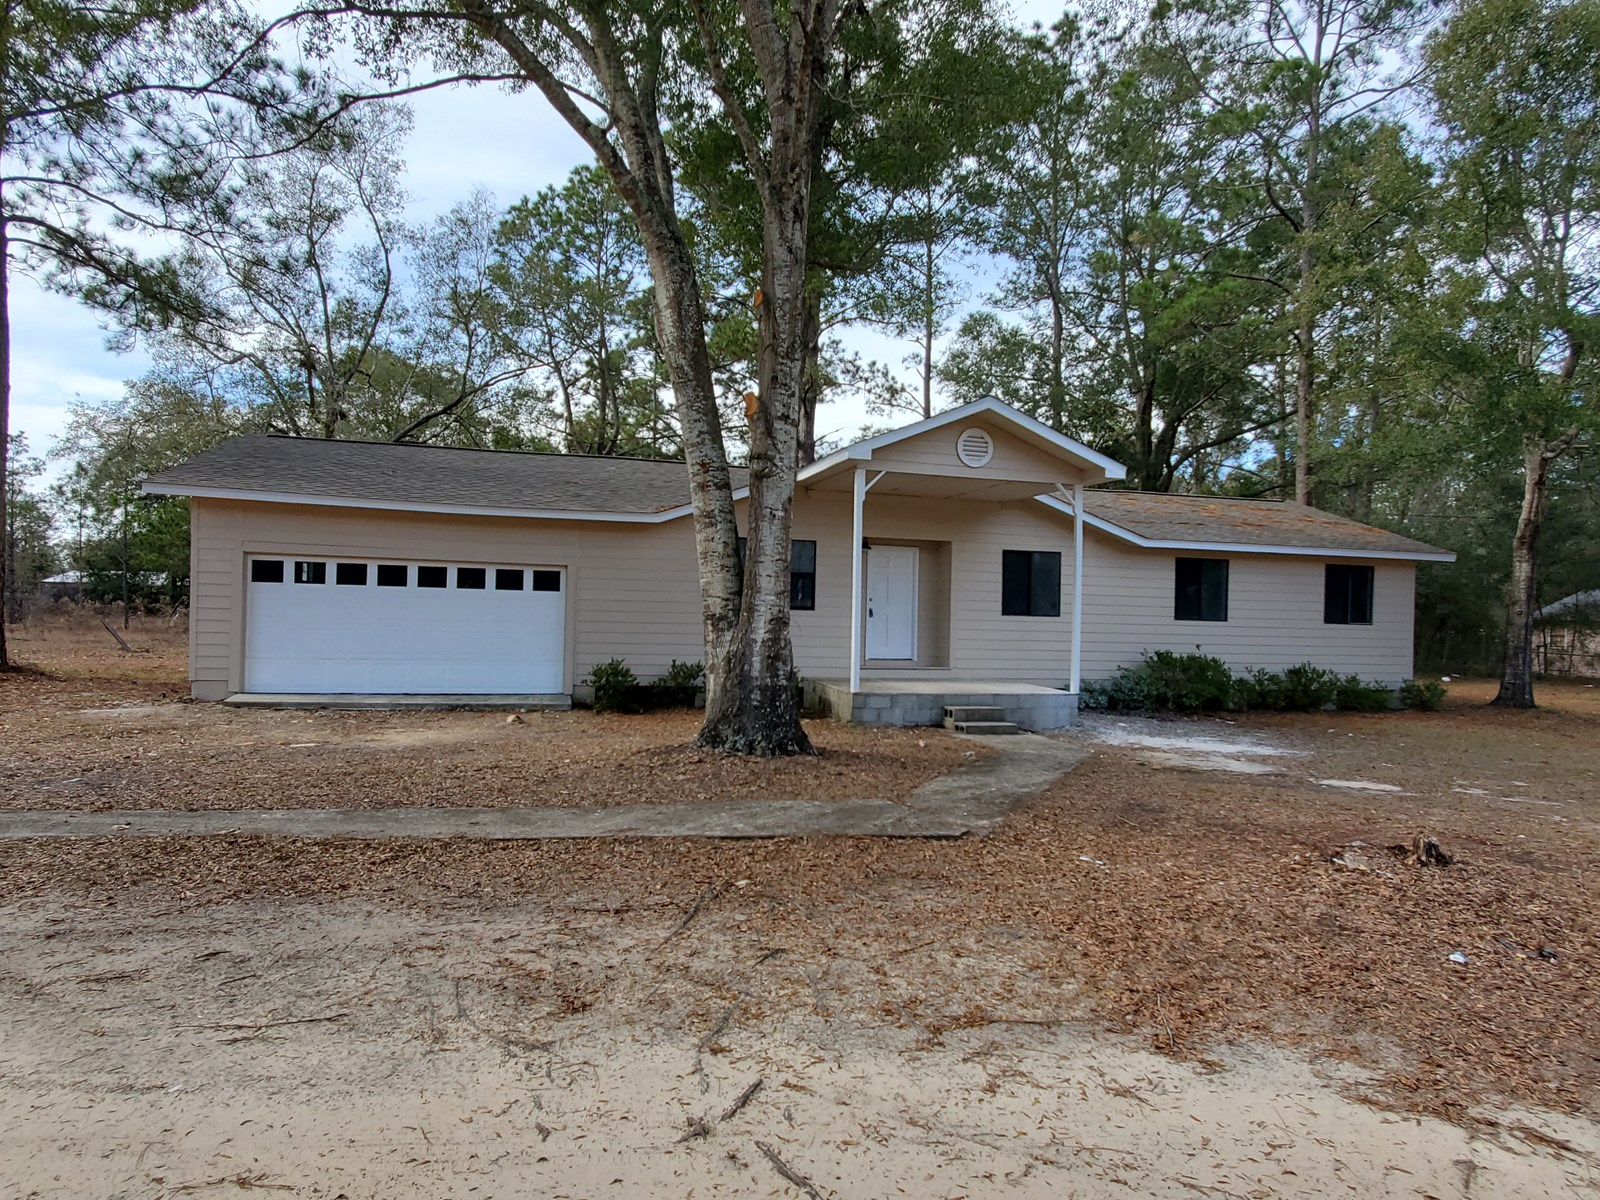 Nicely renovated home near I-10 and Tallahassee